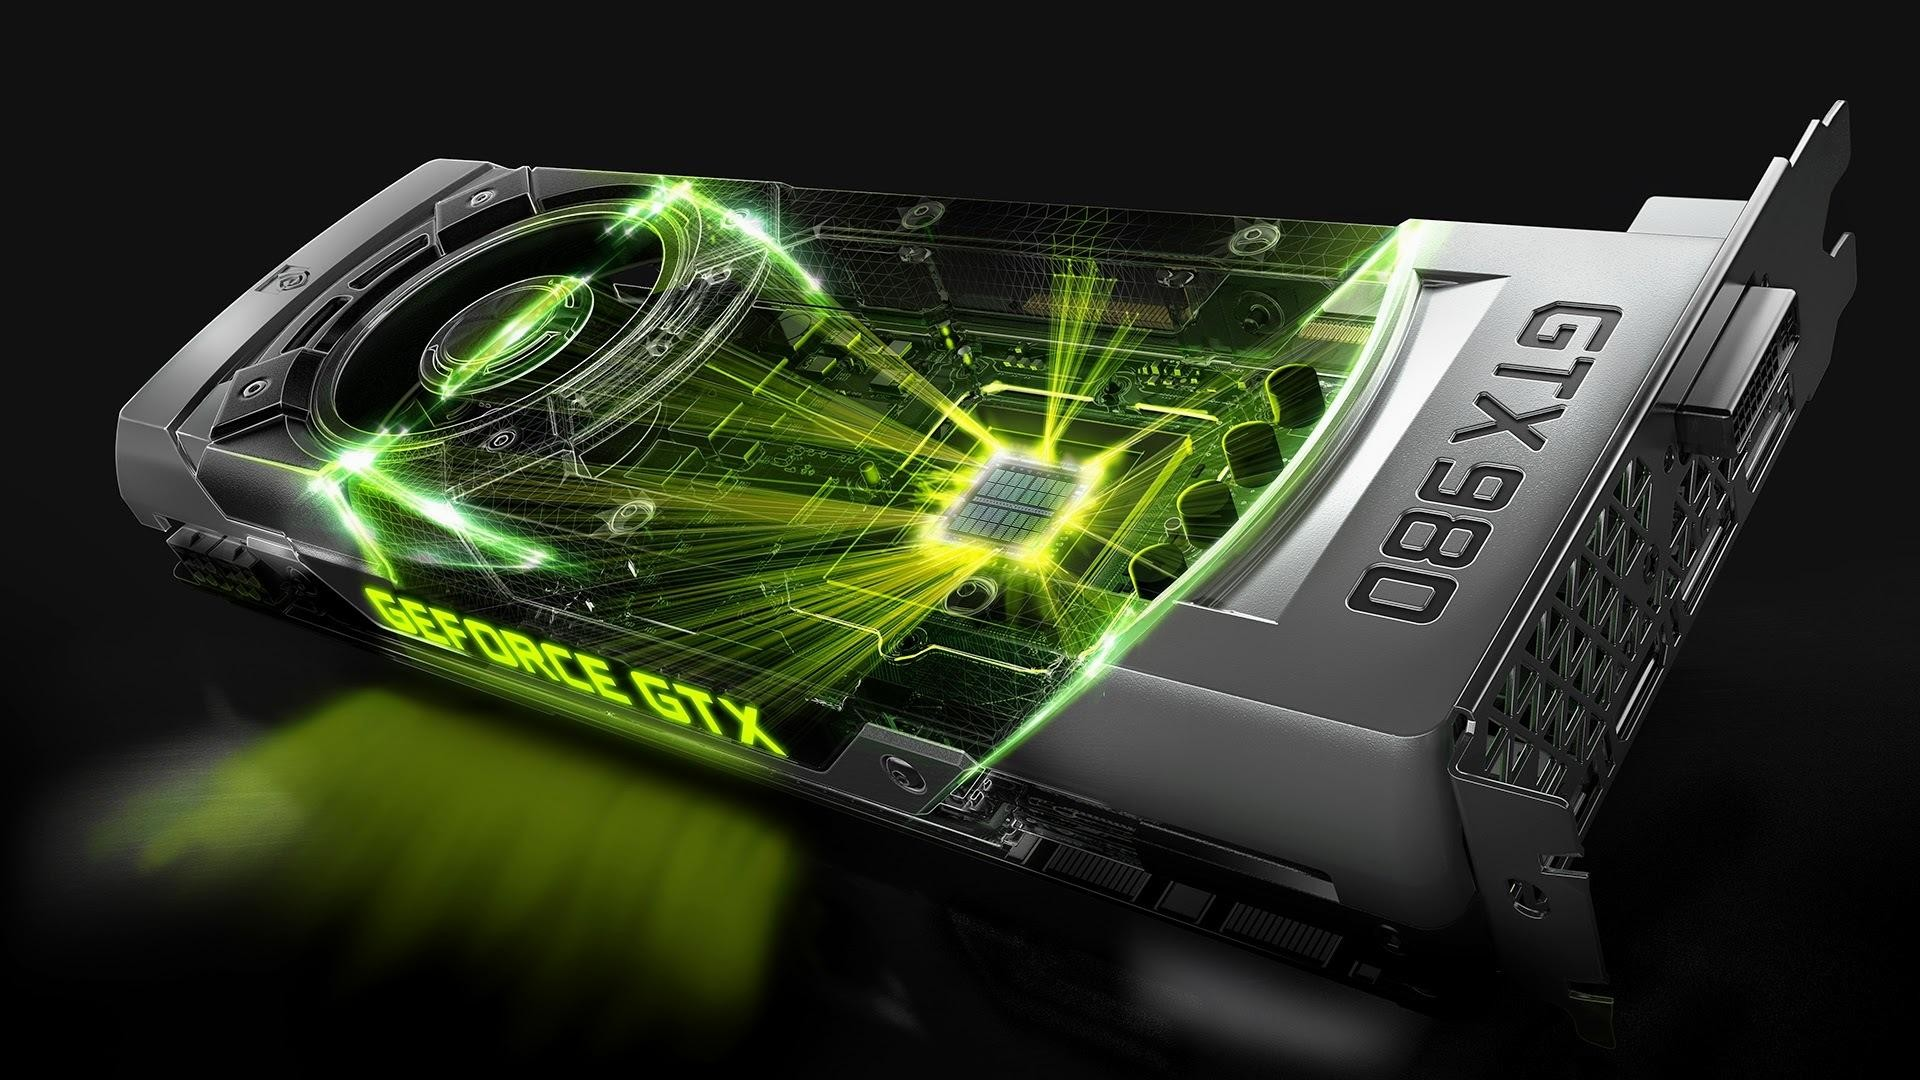 wallpaper.wiki-Nvidia-iamges-hd-free-PIC-WPE002166